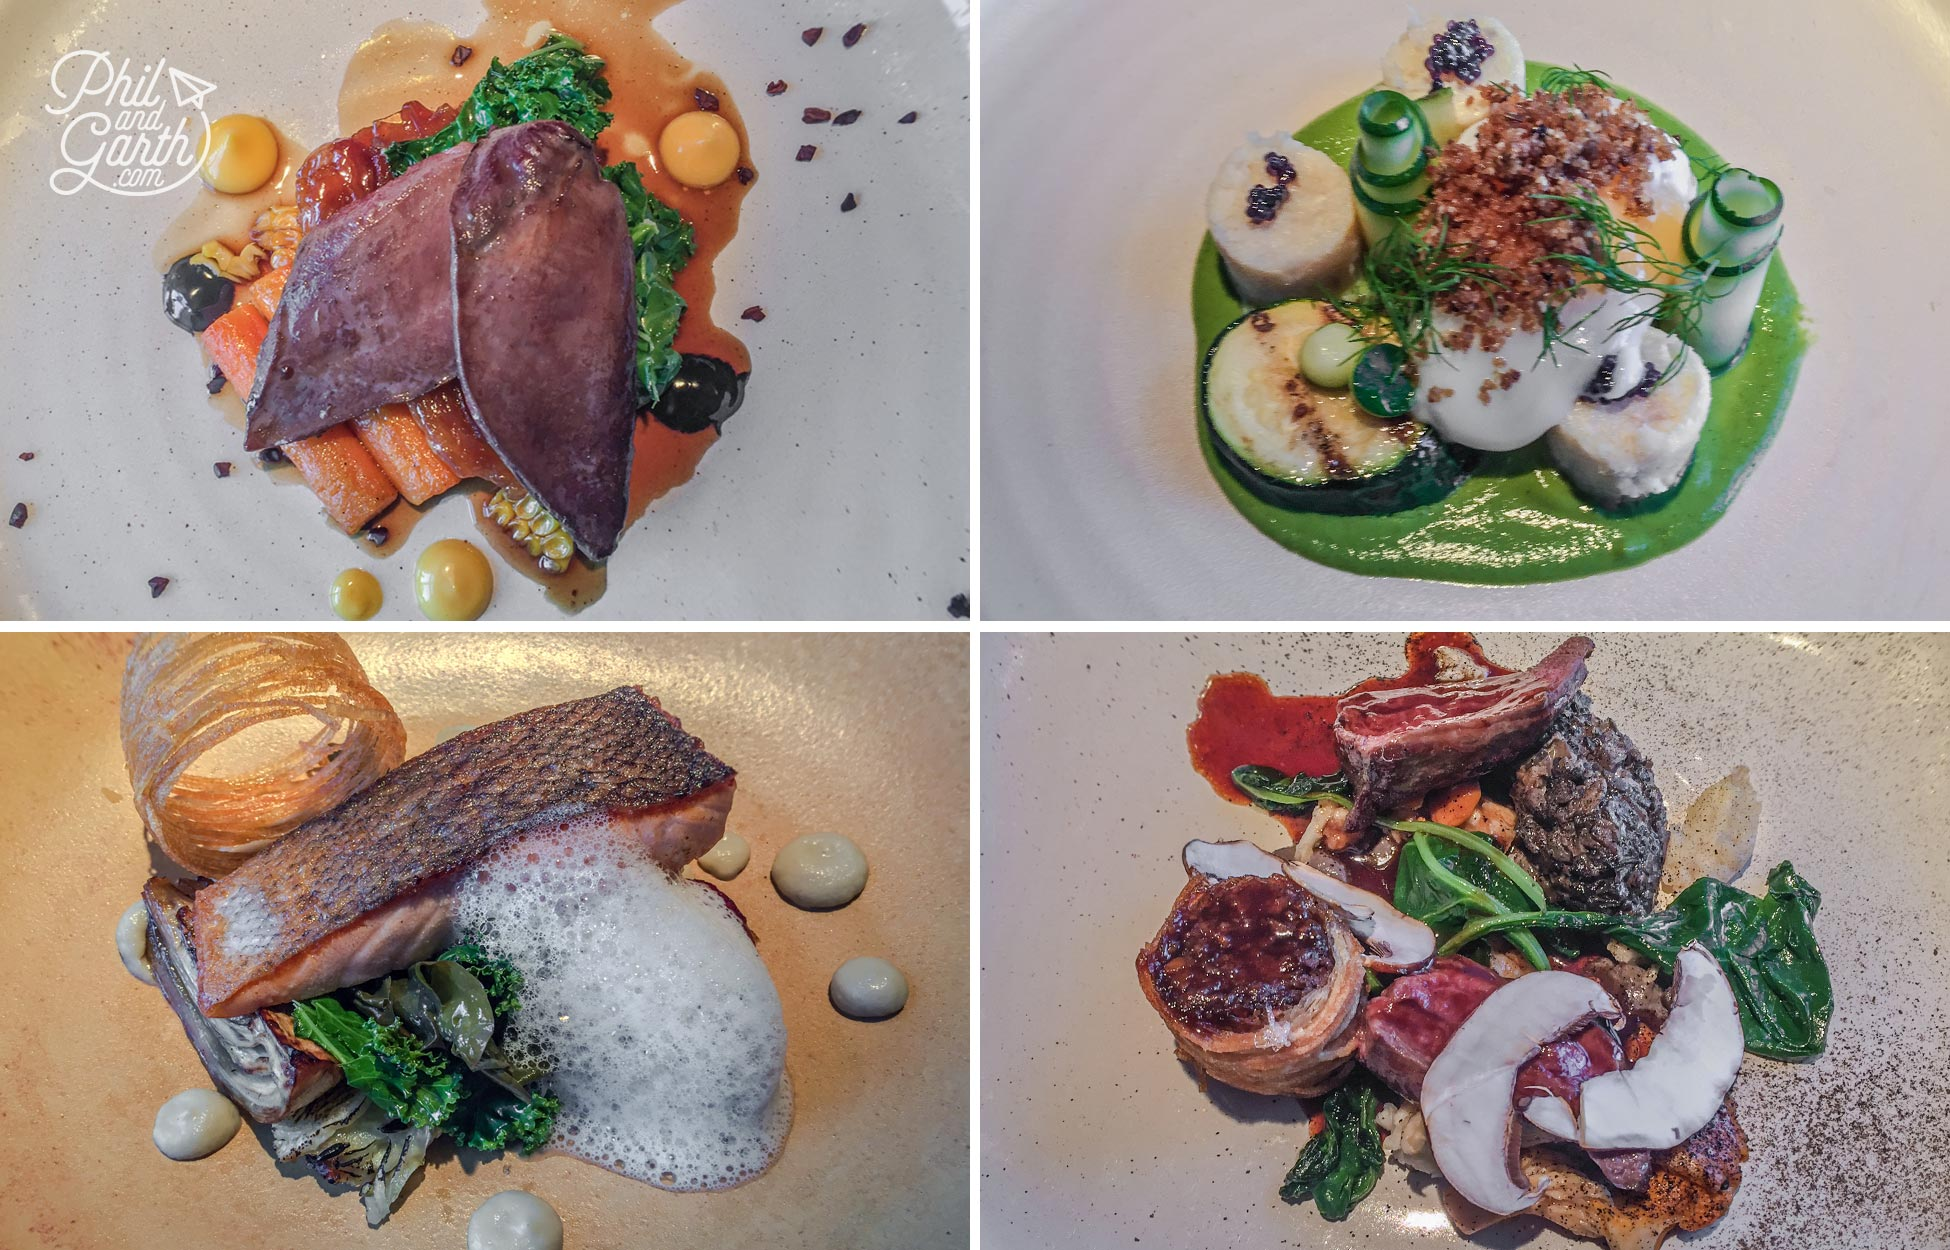 Our delicious dishes at The Three Chimneys